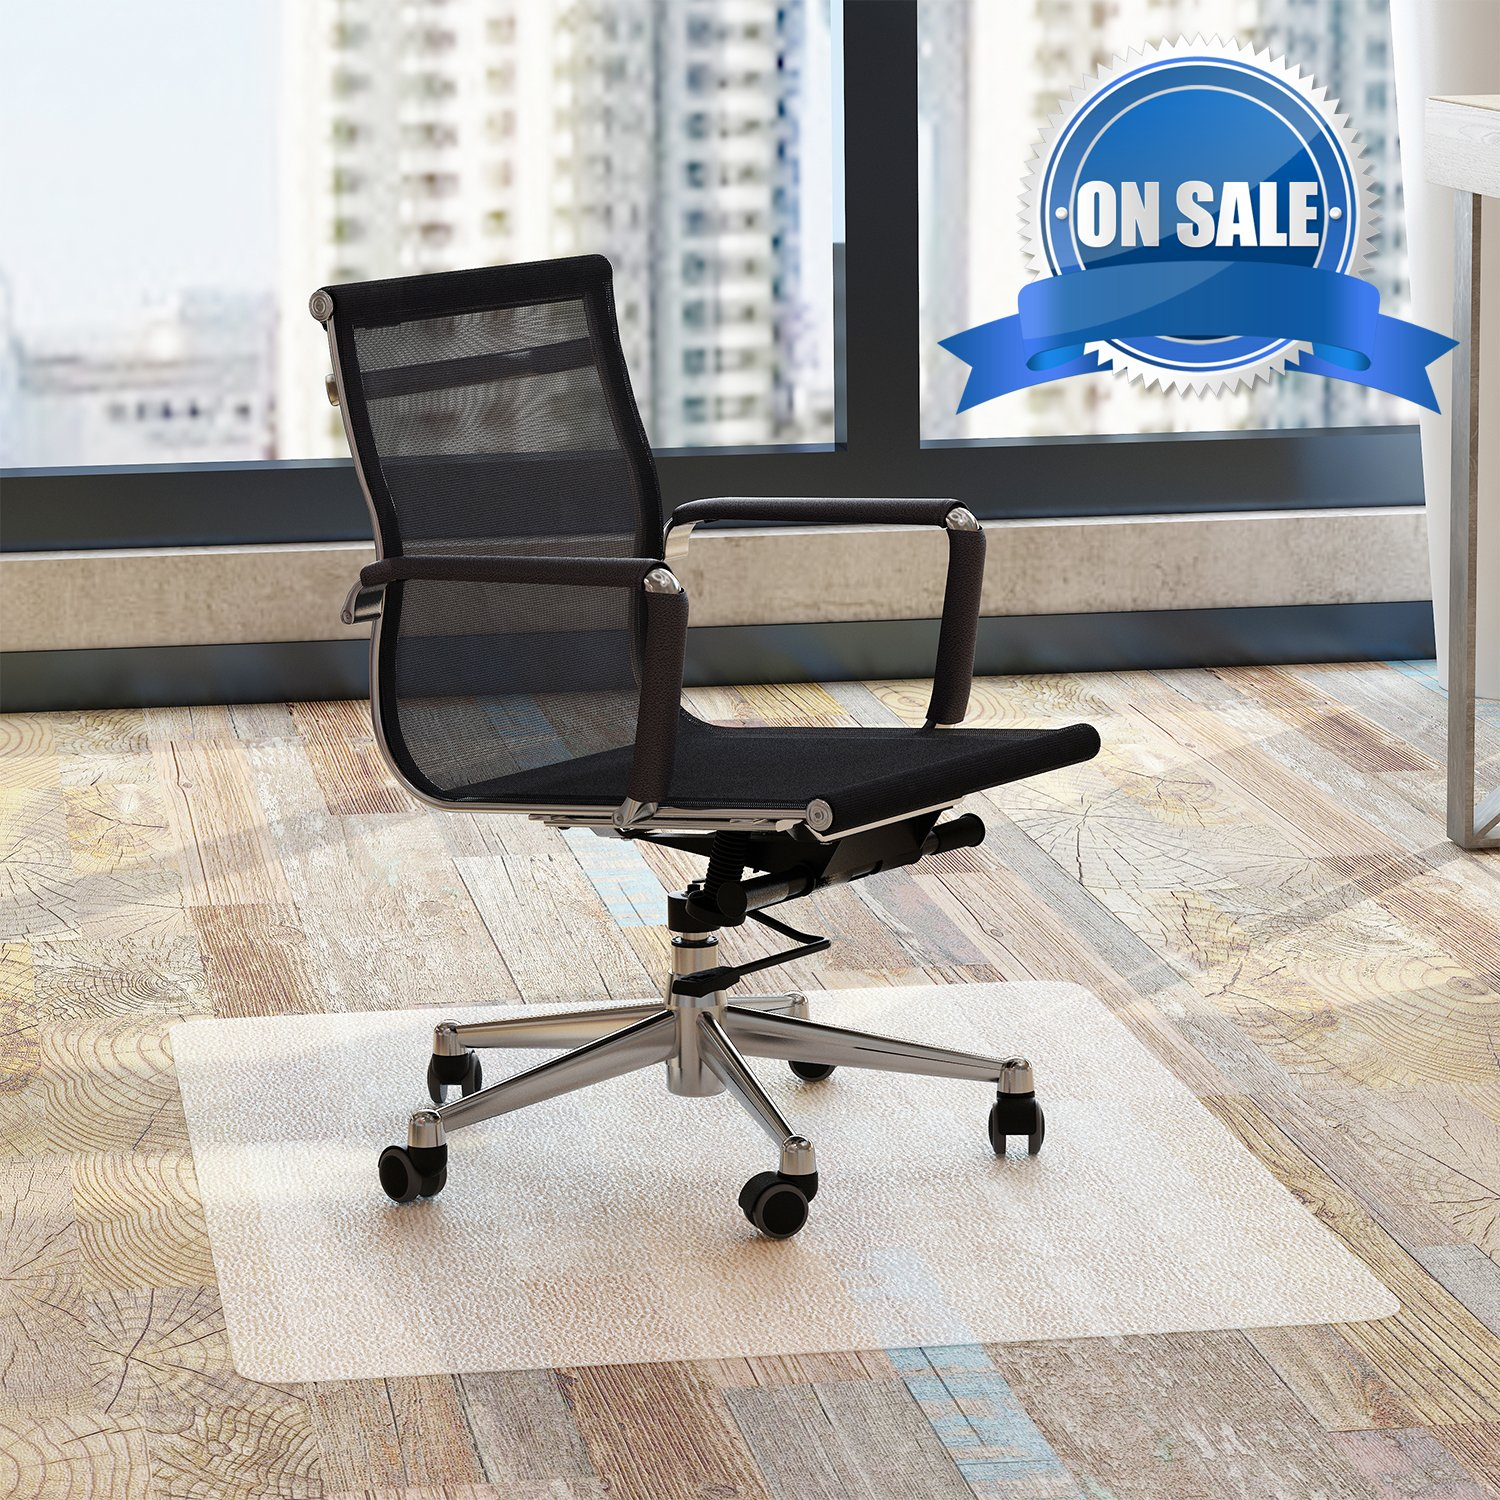 Chair Mat Office for Hardwood Floors 48 x 36 inches - FEZIBO Floor Mats for Desk Chairs